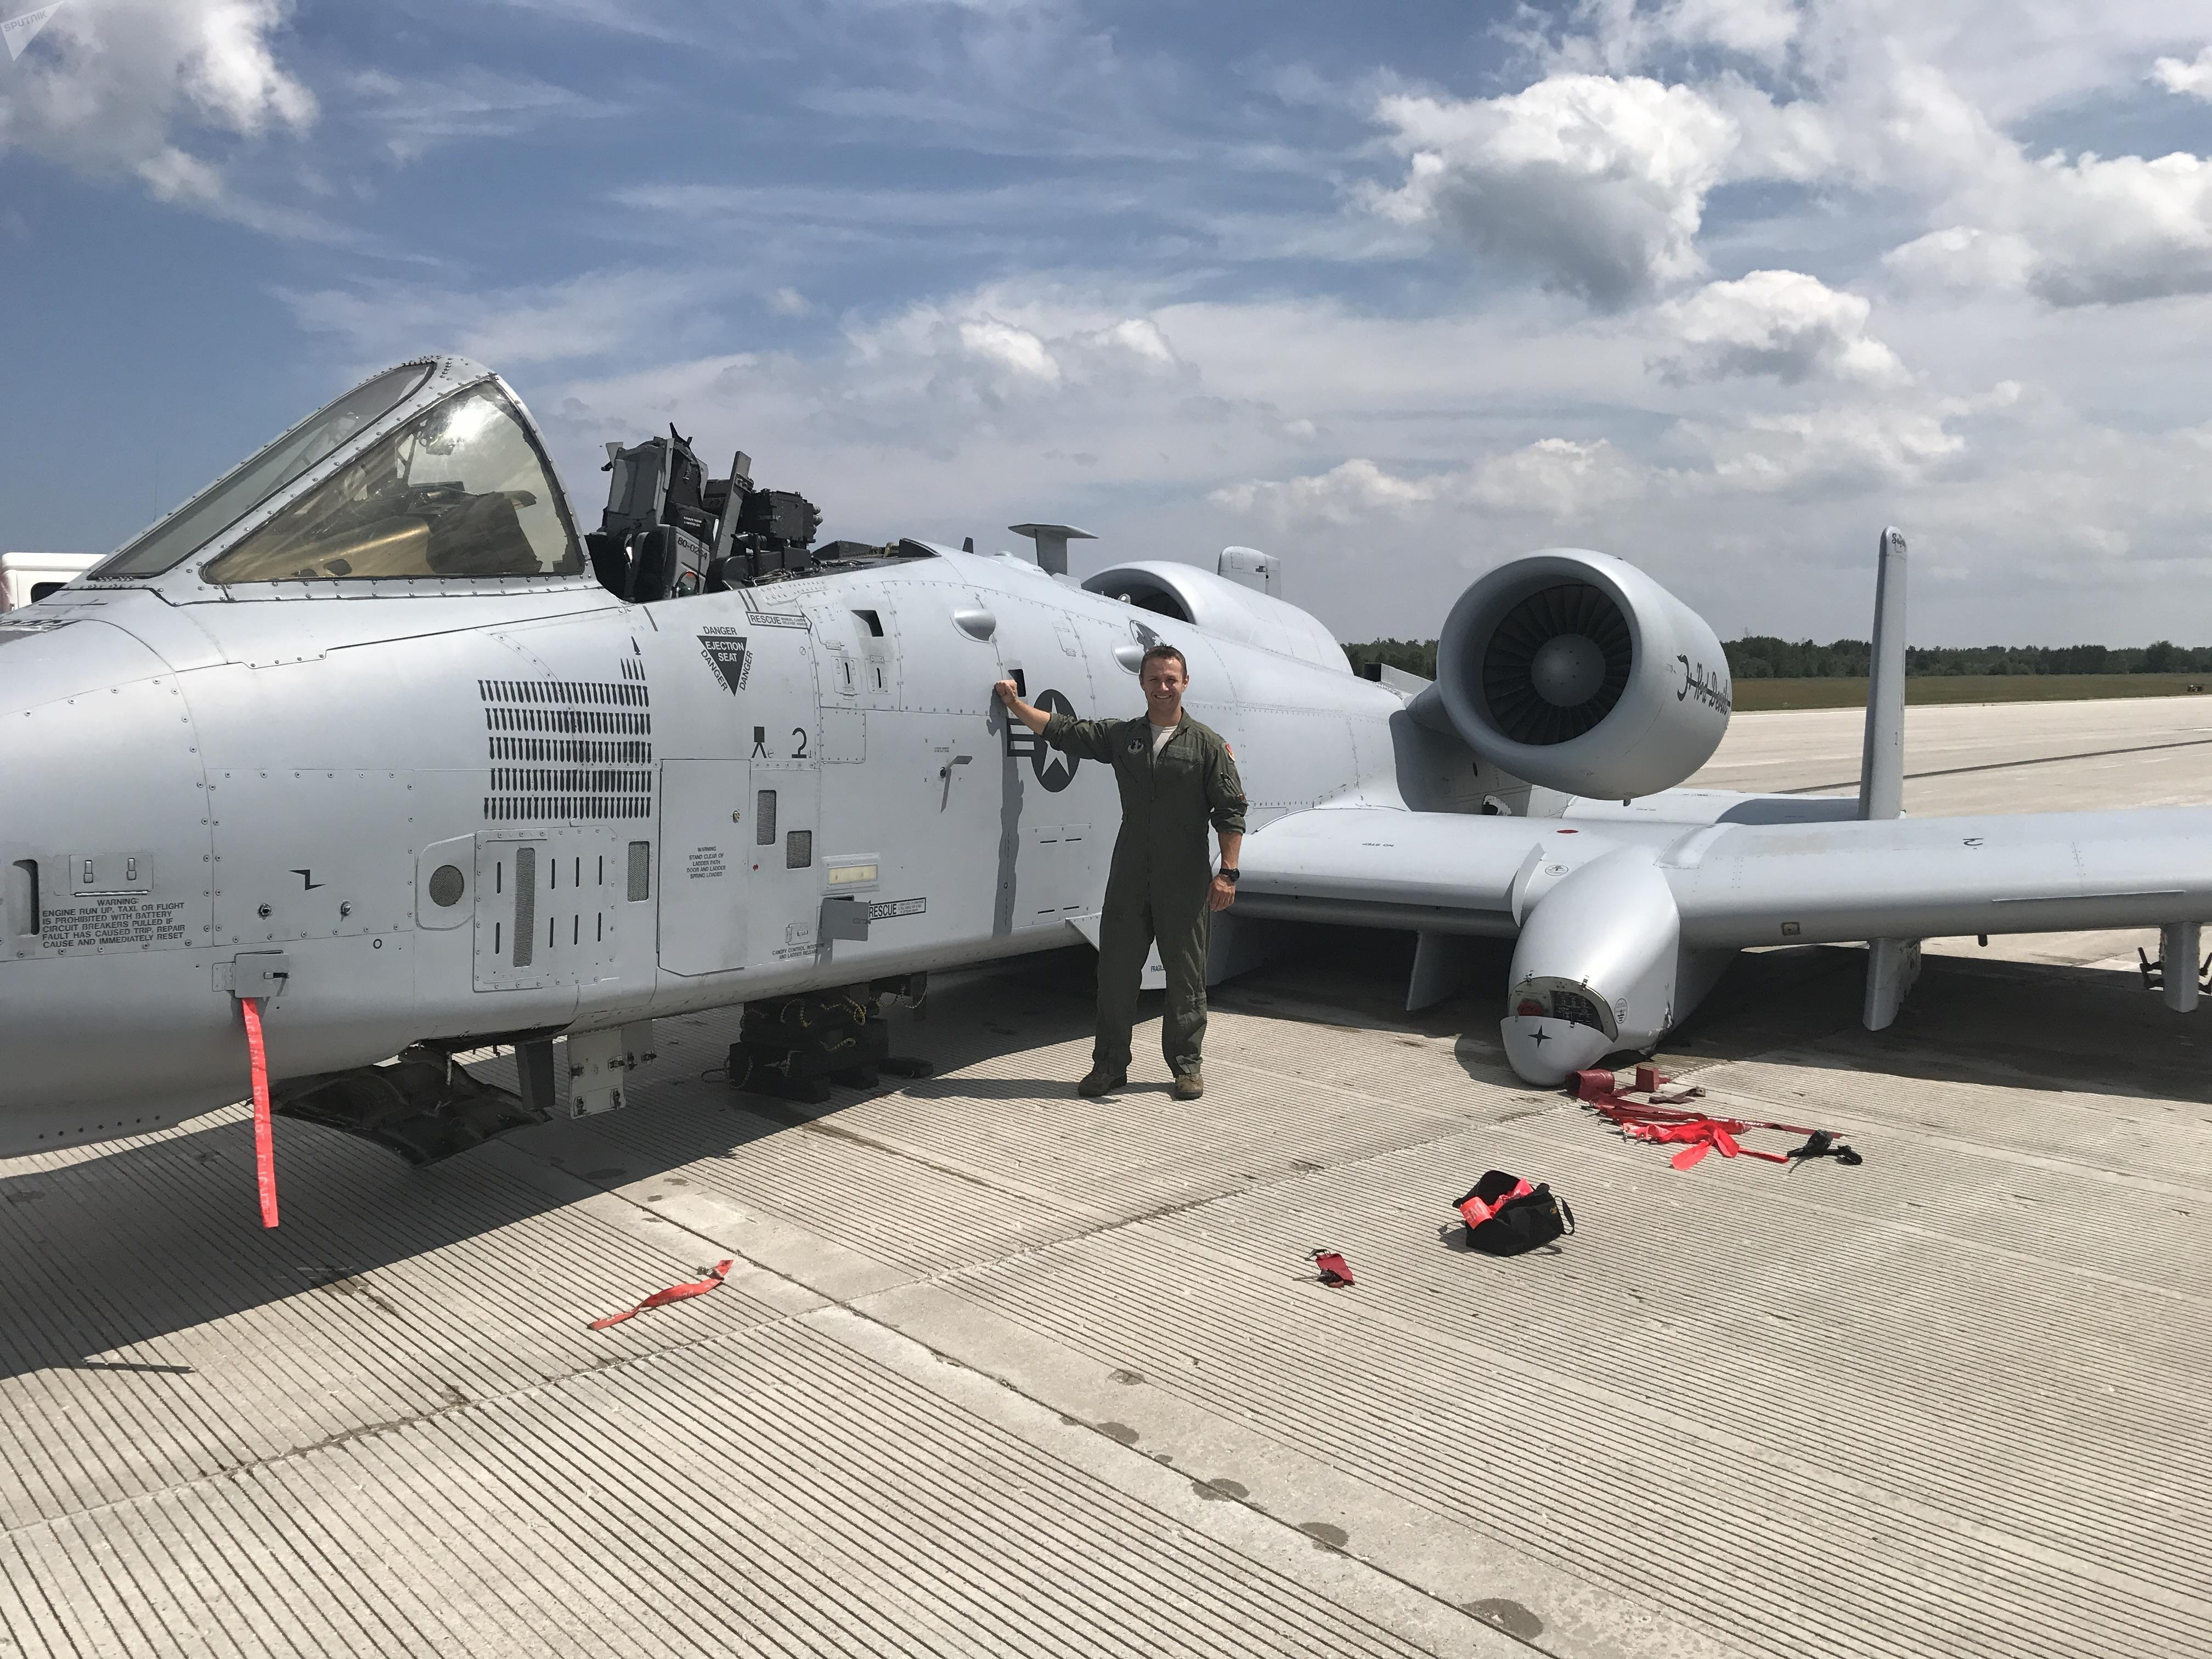 Capt. Brett DeVries, an A-10 Thunderbolt II pilot of the 107th Fighter Squadron from Selfridge Air National Guard Base, poses next to the aircraft he safely landed after a malfunction forced him to make an emergency landing July 20 at the Alpena Combat Readiness Training Center.